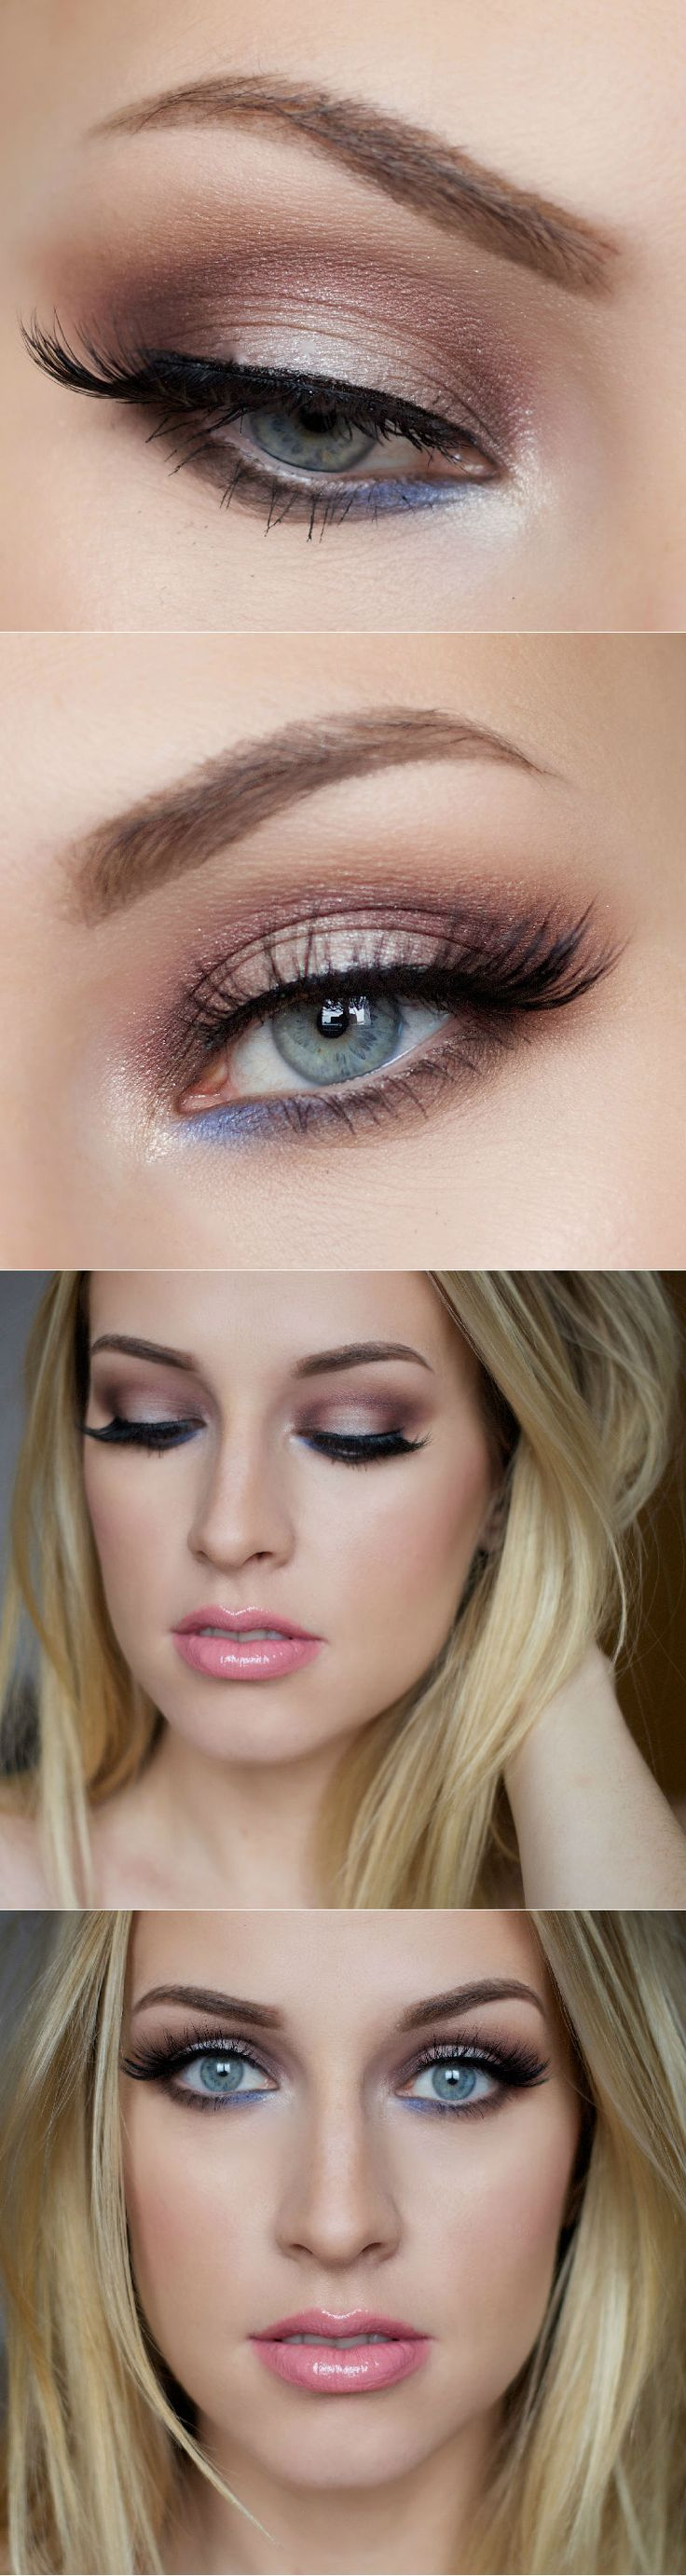 A dab of blue on the bottom lids add a perfectly unexpected pop of color, making your eyes stand out.